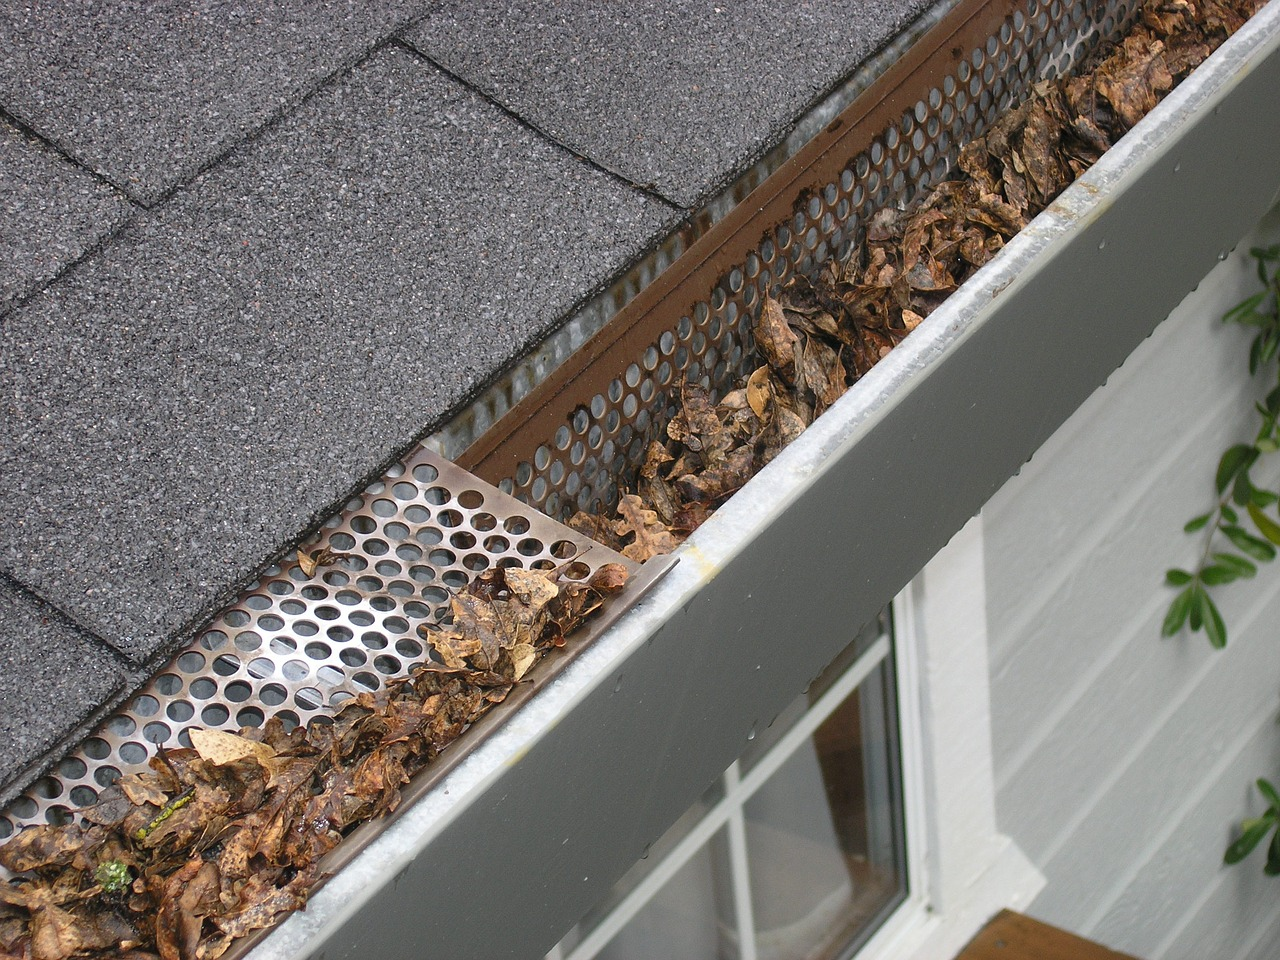 gutter guards prevent having to clean out gutters